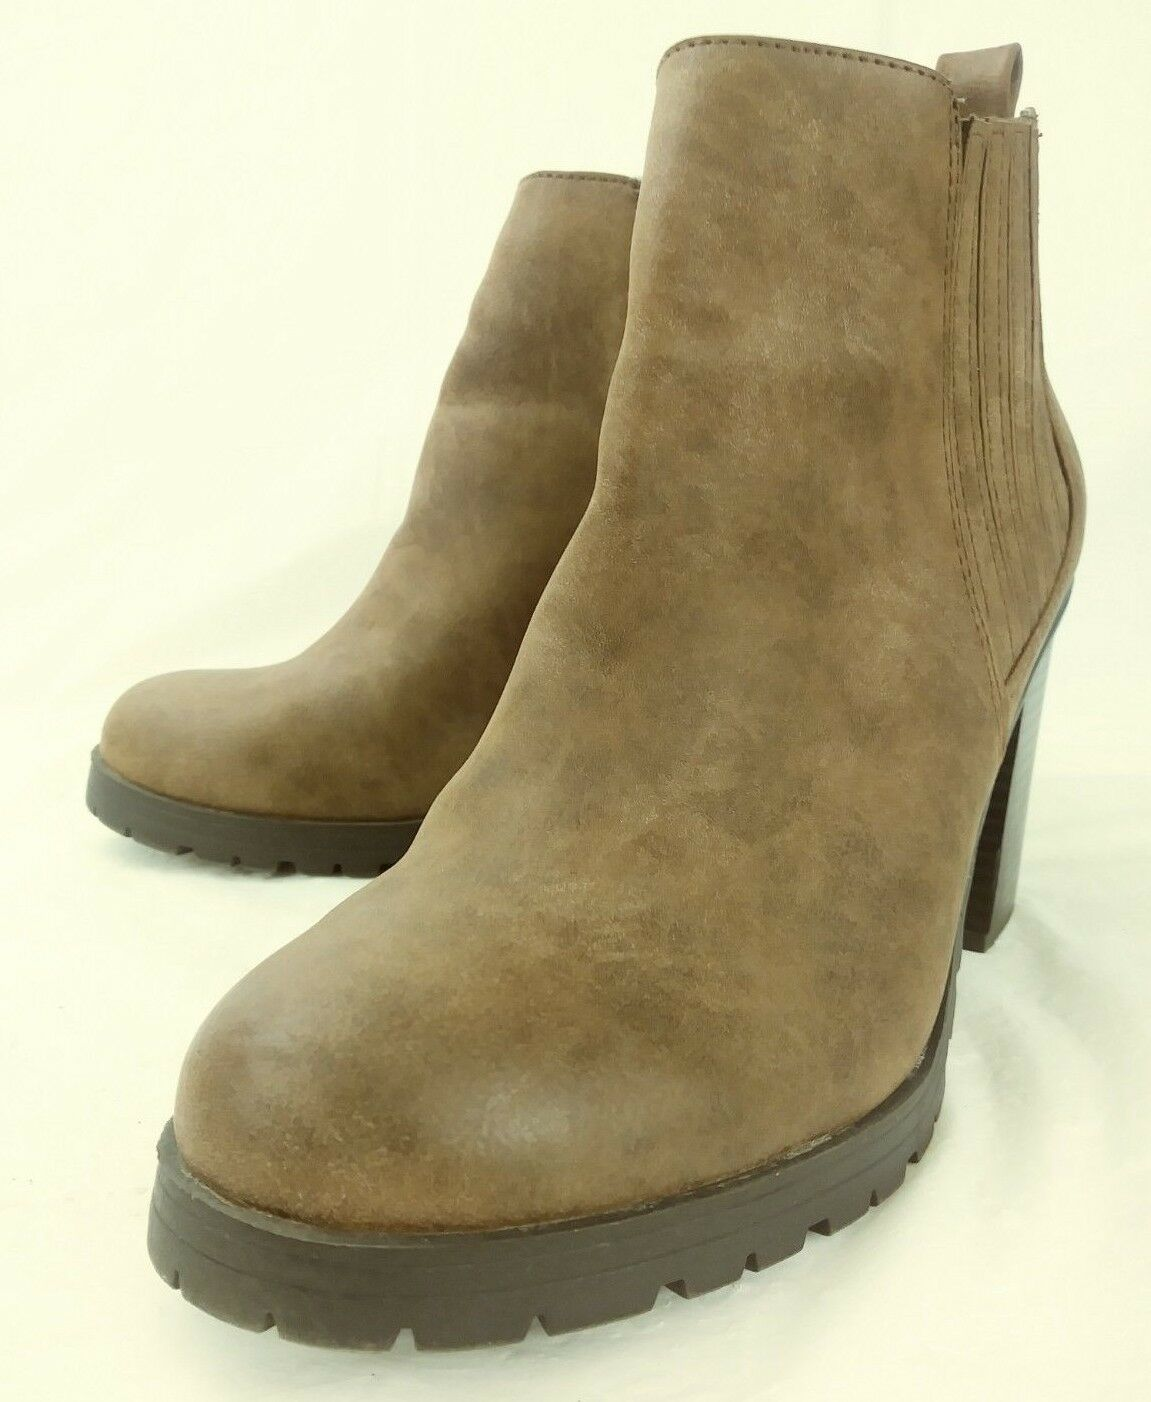 Sam & Libby Wos Boots Ankle Chelsea US 9 Brown Leather Pull On Heels 3202